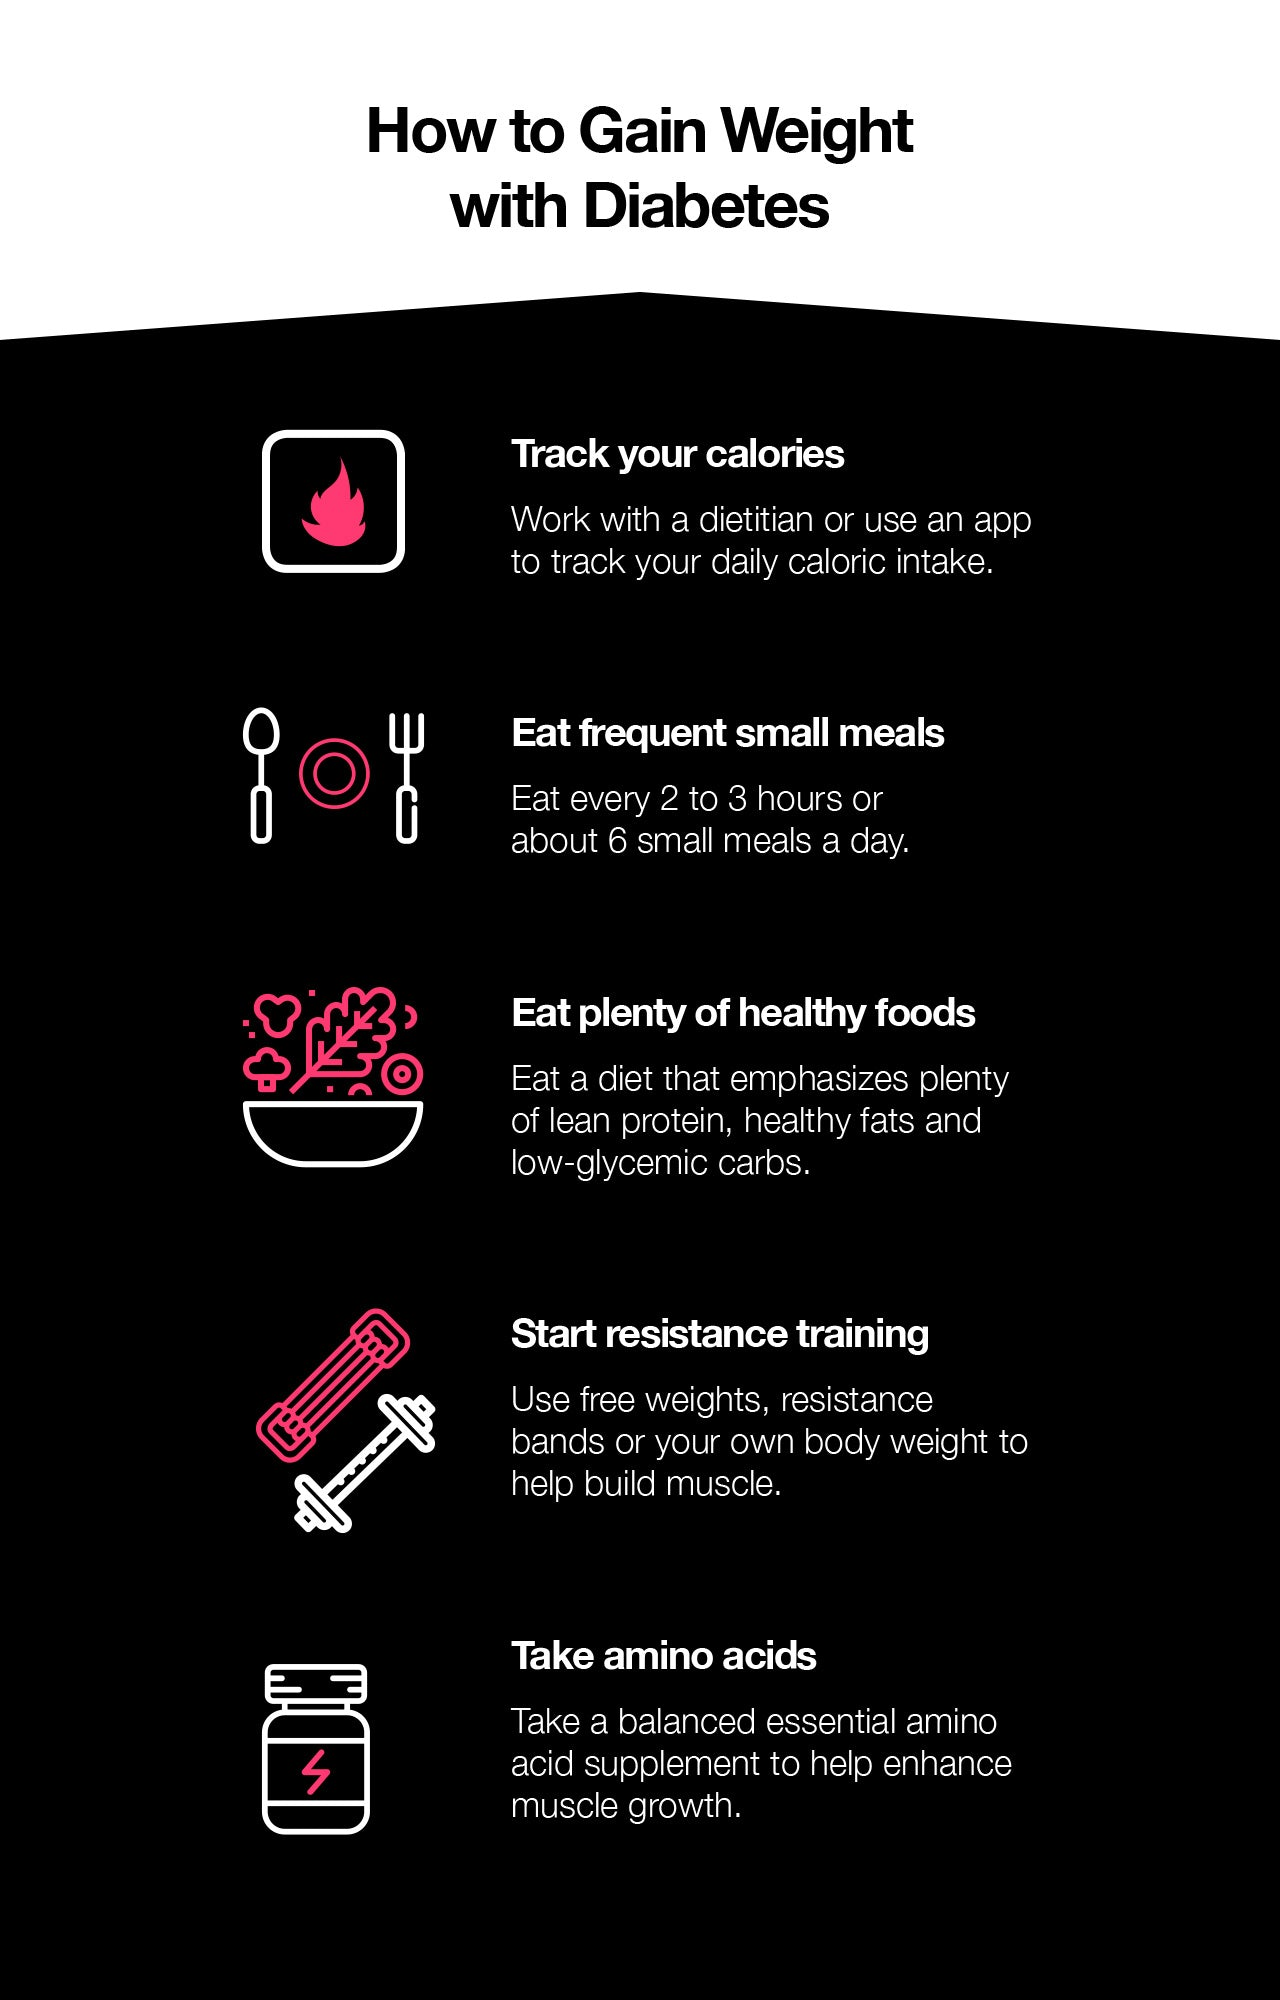 How to Gain Weight with Diabetes